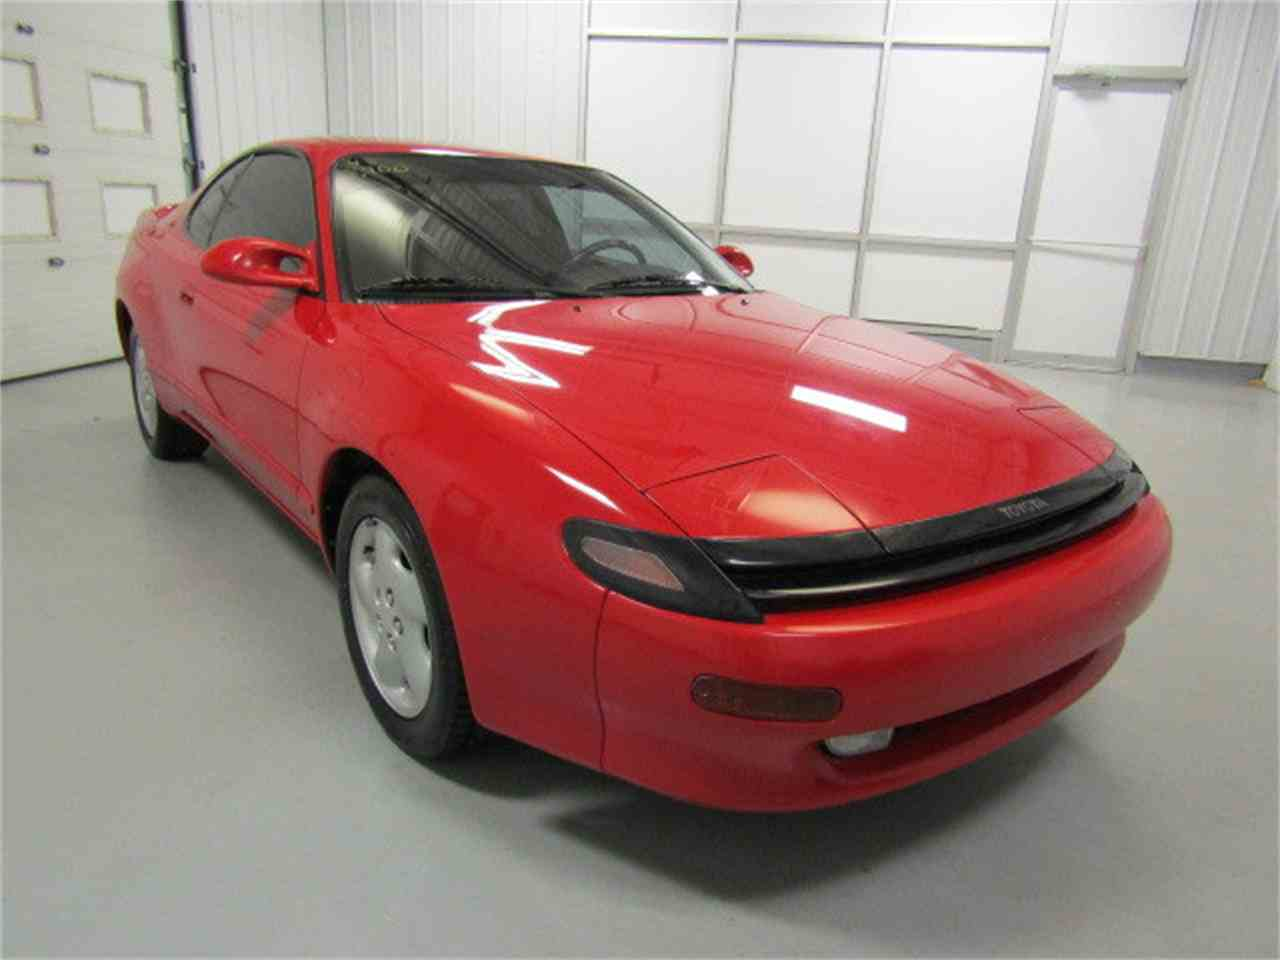 1990 Toyota Celica for Sale - CC-1003213